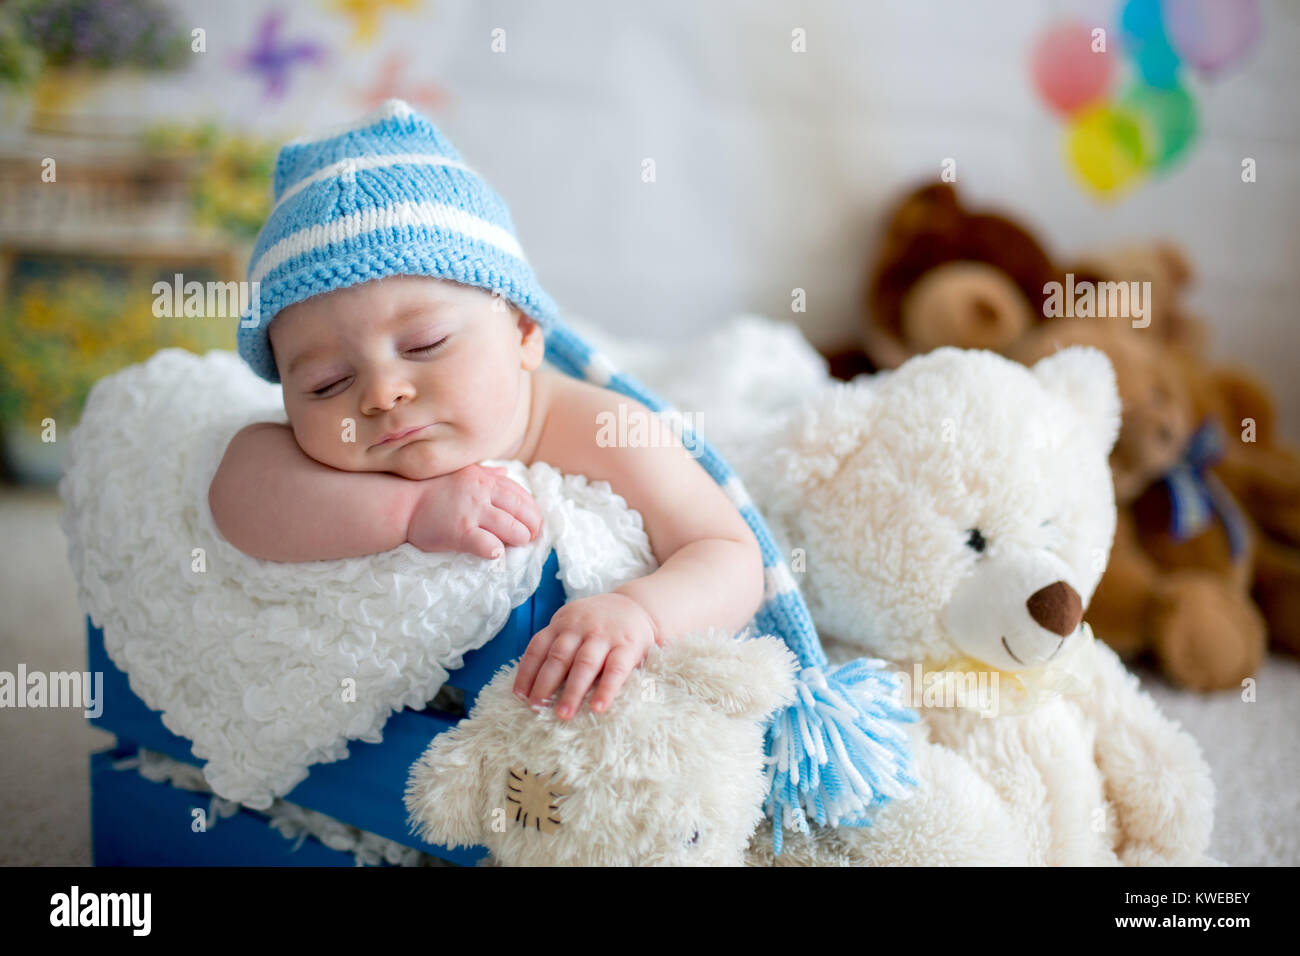 8eddb3ae0 Little baby boy with knitted hat